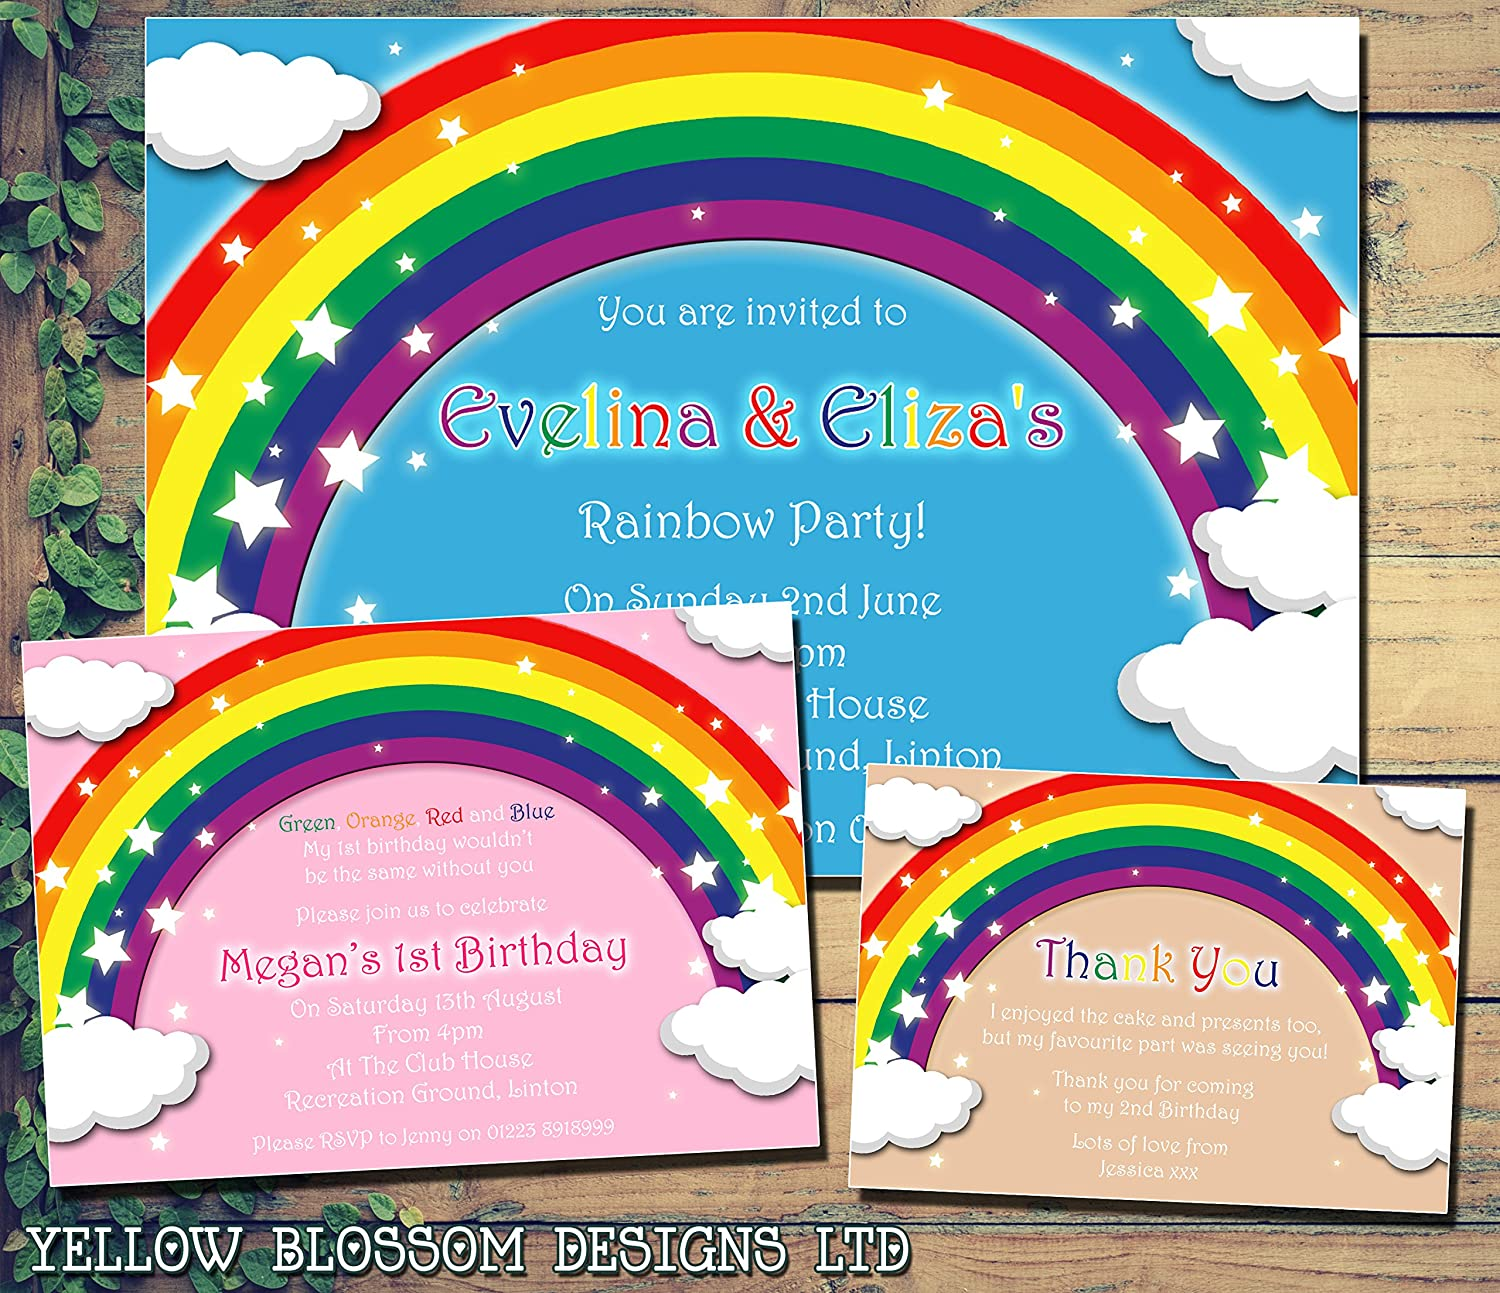 Personalised Childrens Birthday Invitations Printed Invites Boy Girl Joint Party Twins Unisex Rainbow Party 1st 2nd 3rd 4th 5th 6th Thank You Cards